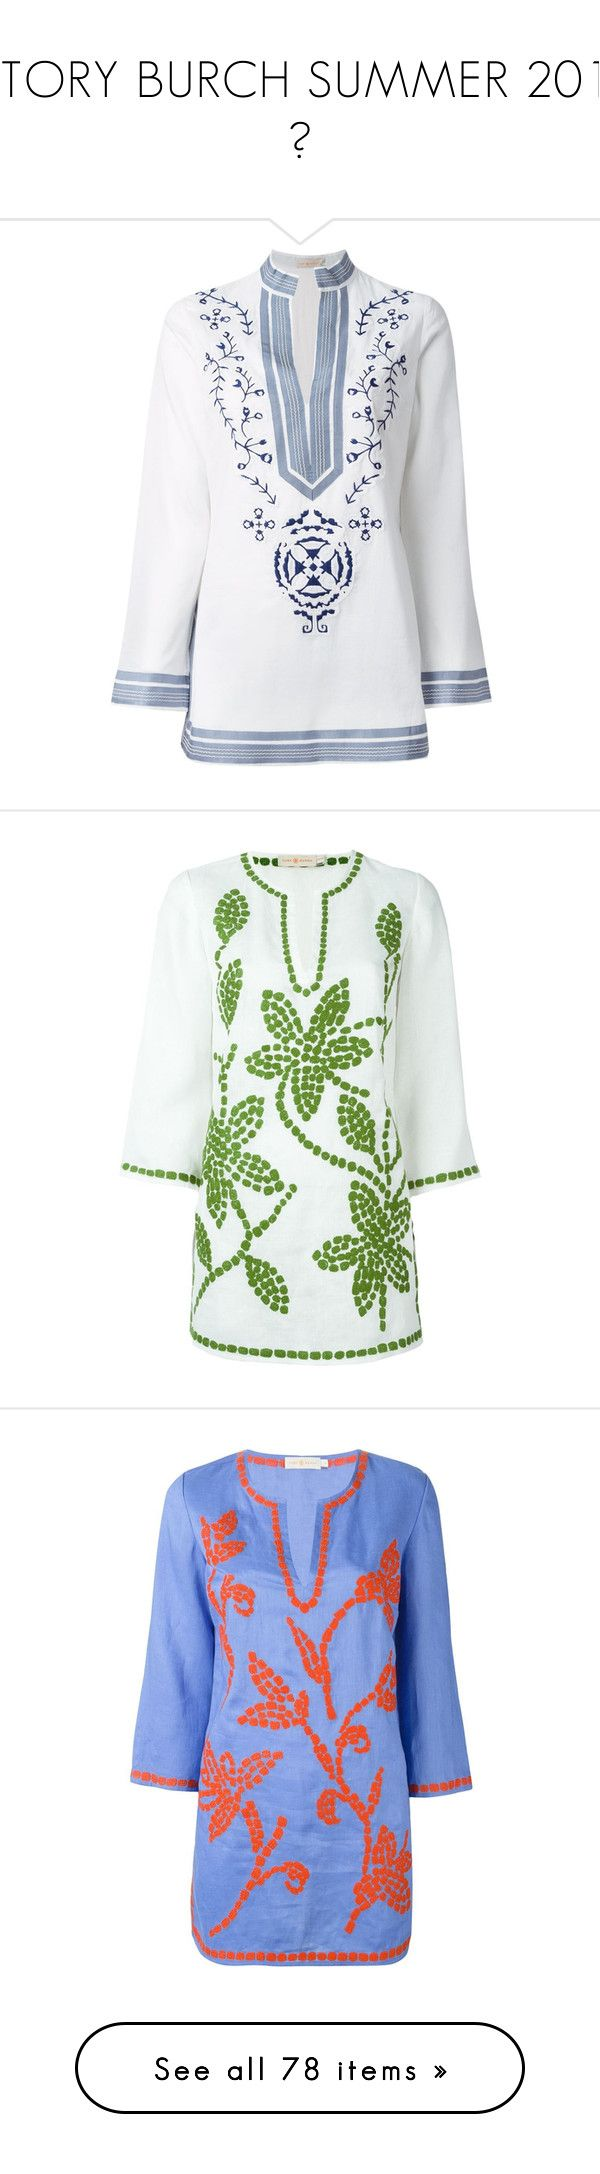 """✿ TORY BURCH SUMMER 2016 ✿"" by hrfost1210 ❤ liked on Polyvore featuring tops, tunics, blouses, white, embroidery top, white embroidered tunic, white tunic, embroidered tunic, tory burch tops and linen tunic"